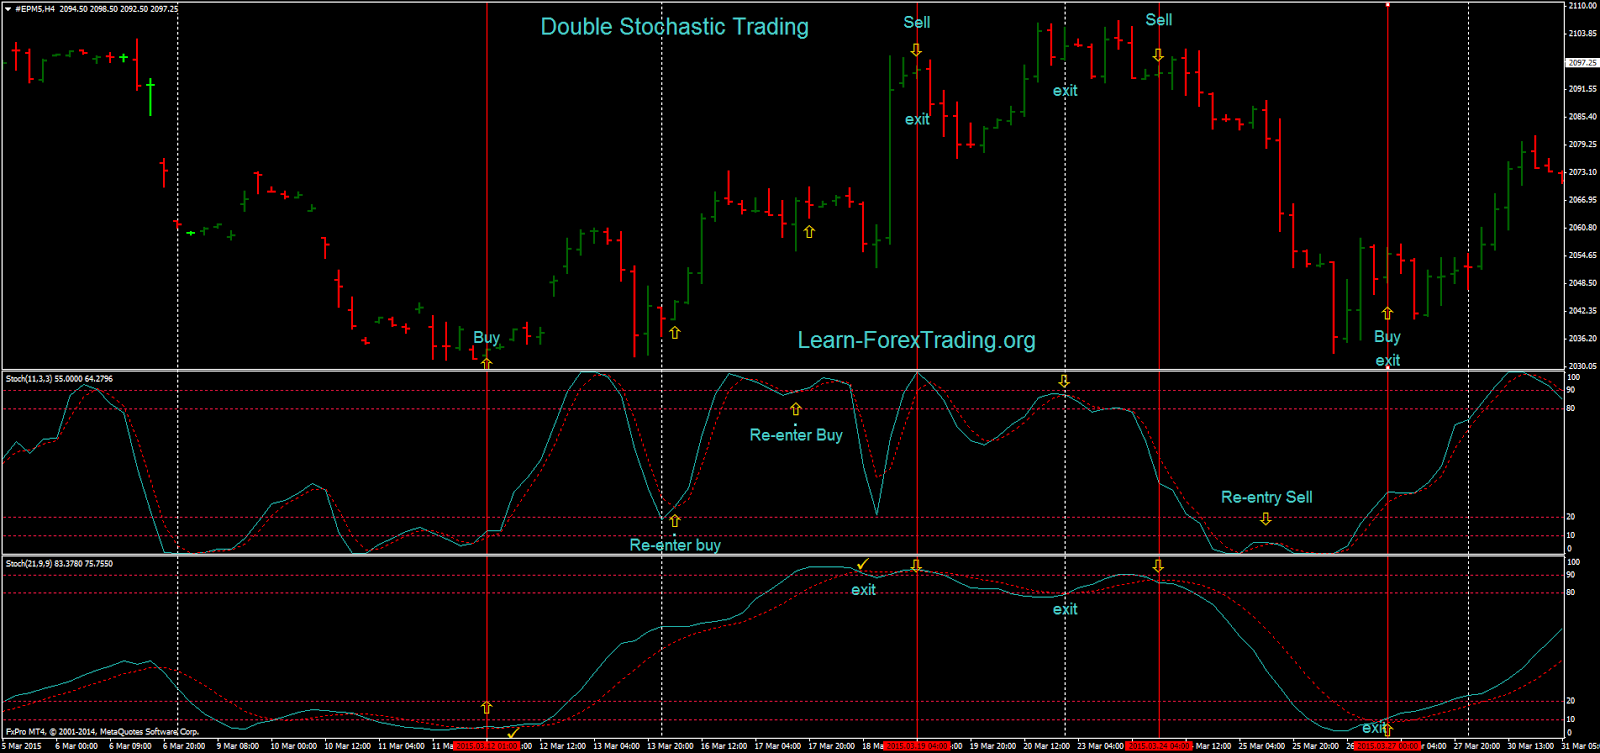 Double Stochastic Trading